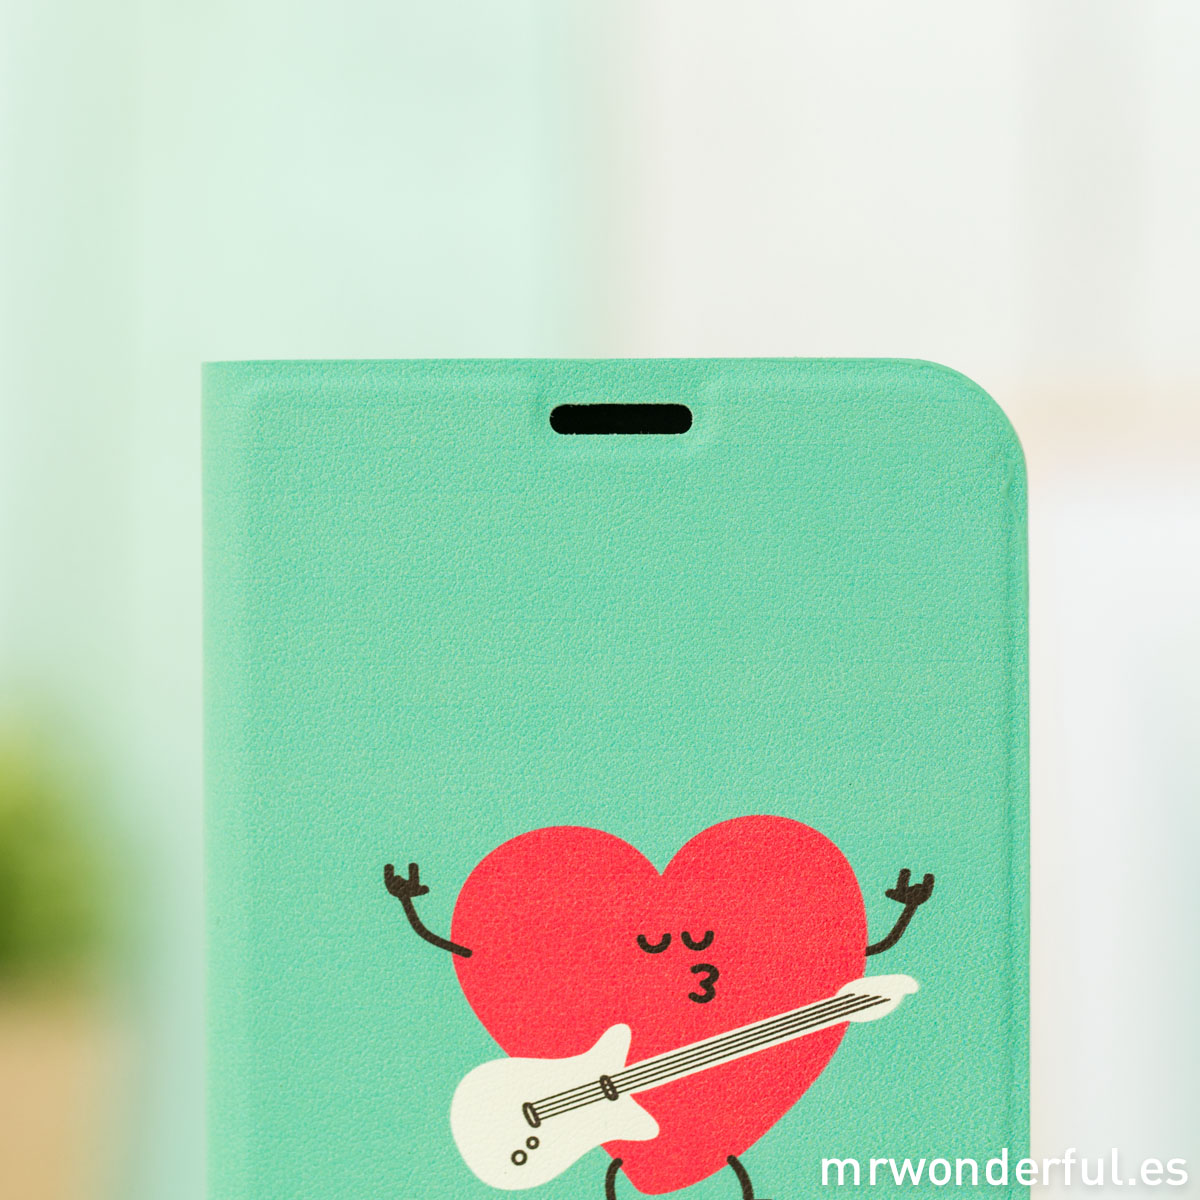 mrwonderful_MRFOL004_funda-mint-samsung-galaxy-S5_you-make-heart-sing-29